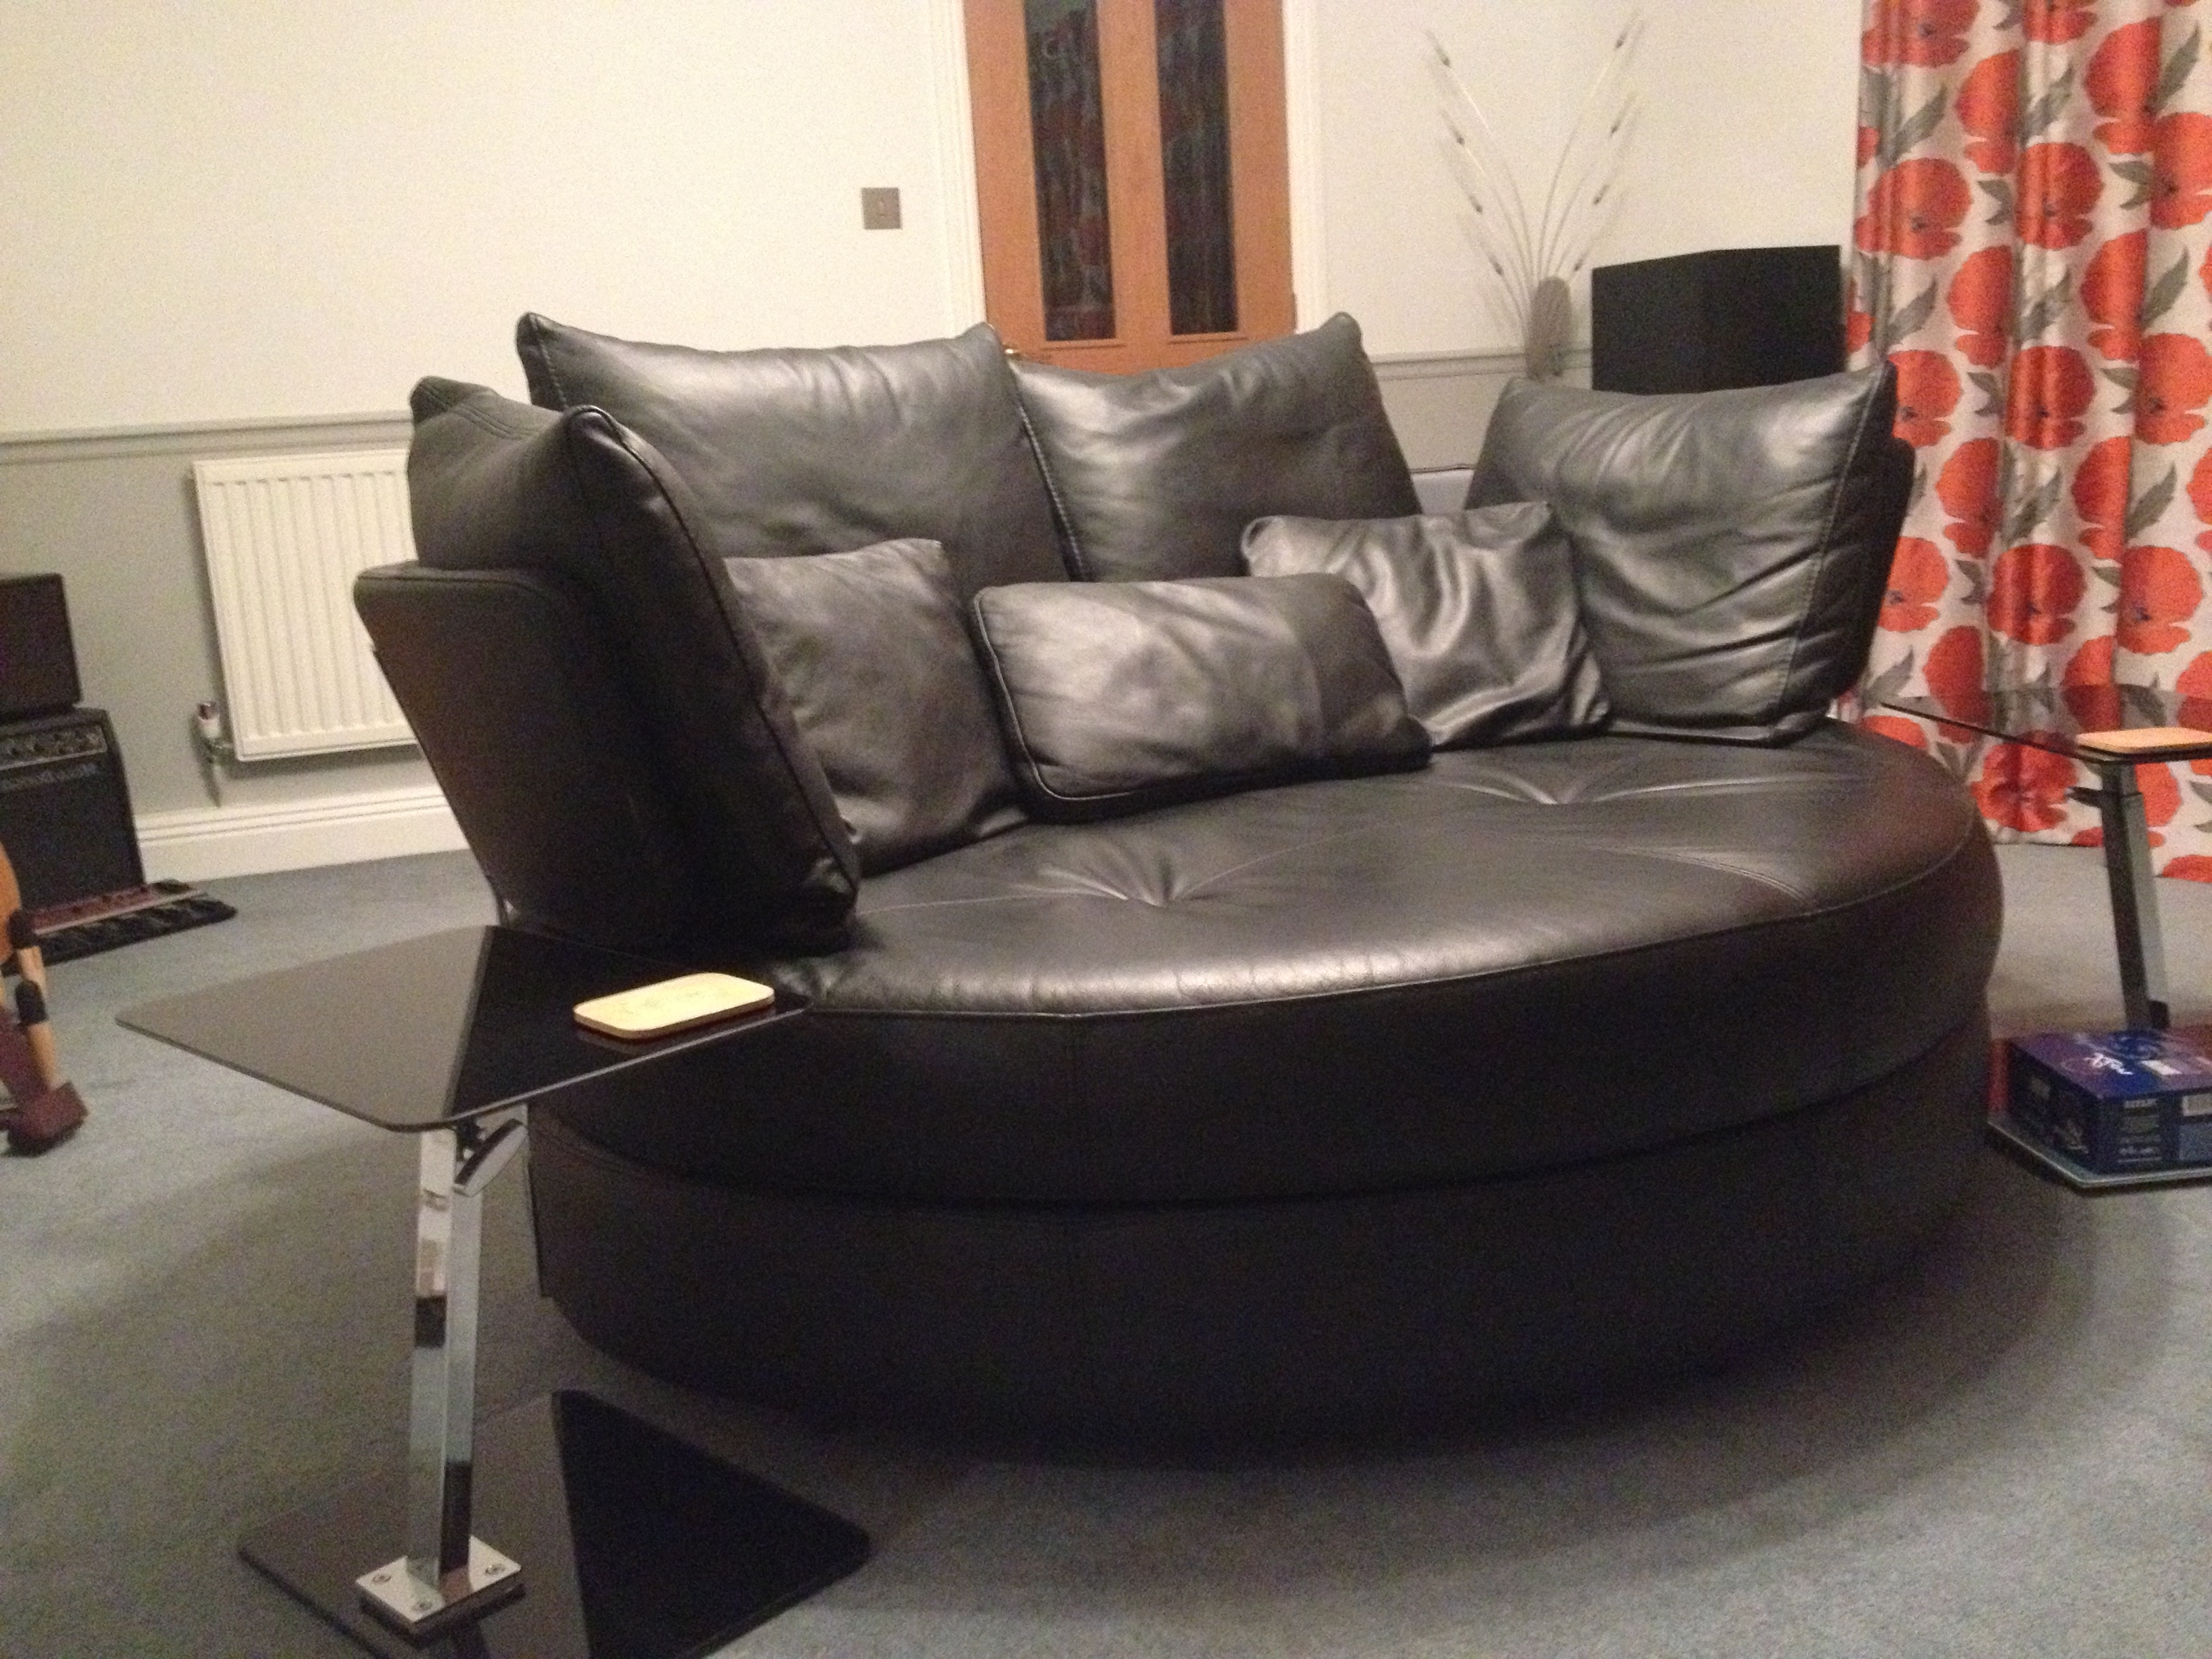 Recent Sofas With Swivel Chair Intended For Fabulous Leather 2 Person Large Swivel Snuggler Chair/sofa (View 14 of 15)